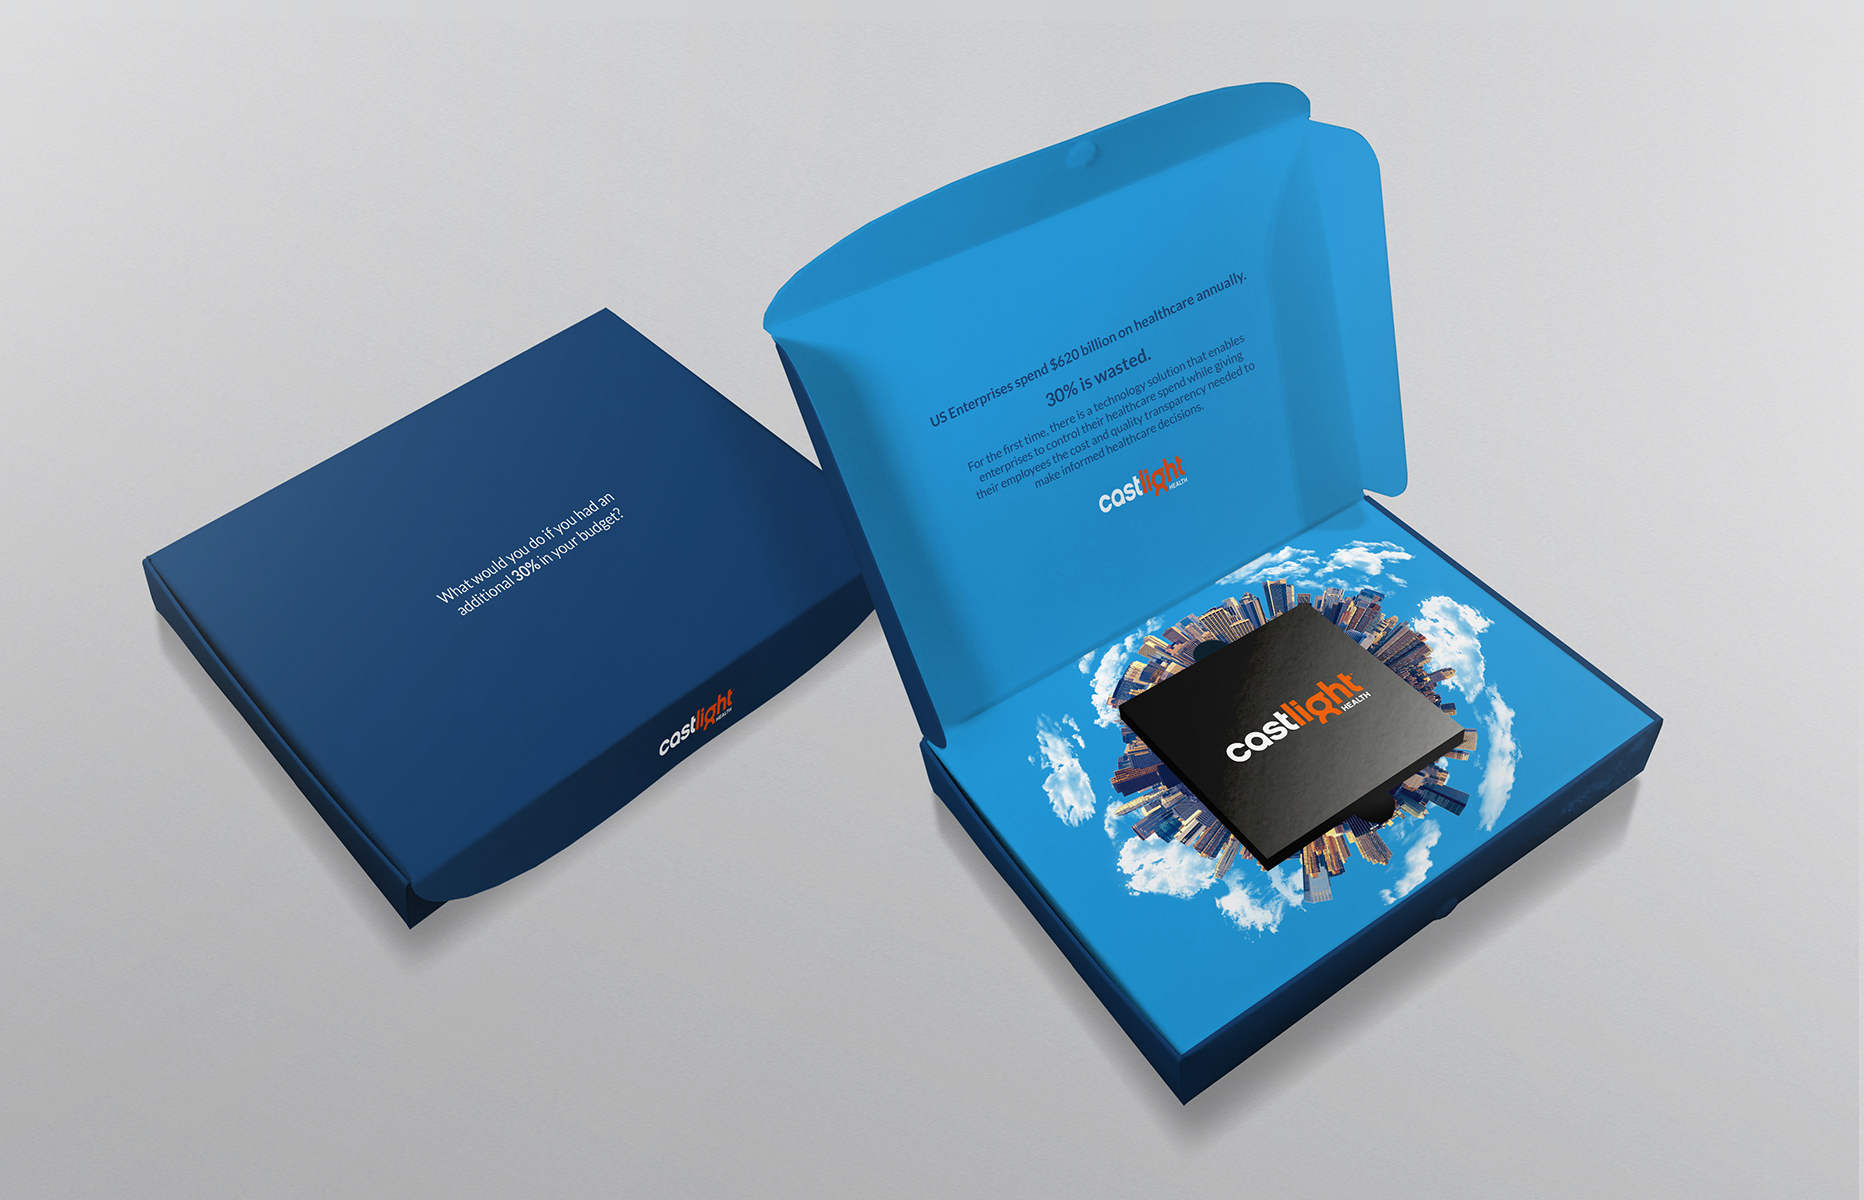 Castlight Health: Targeted Direct Mail